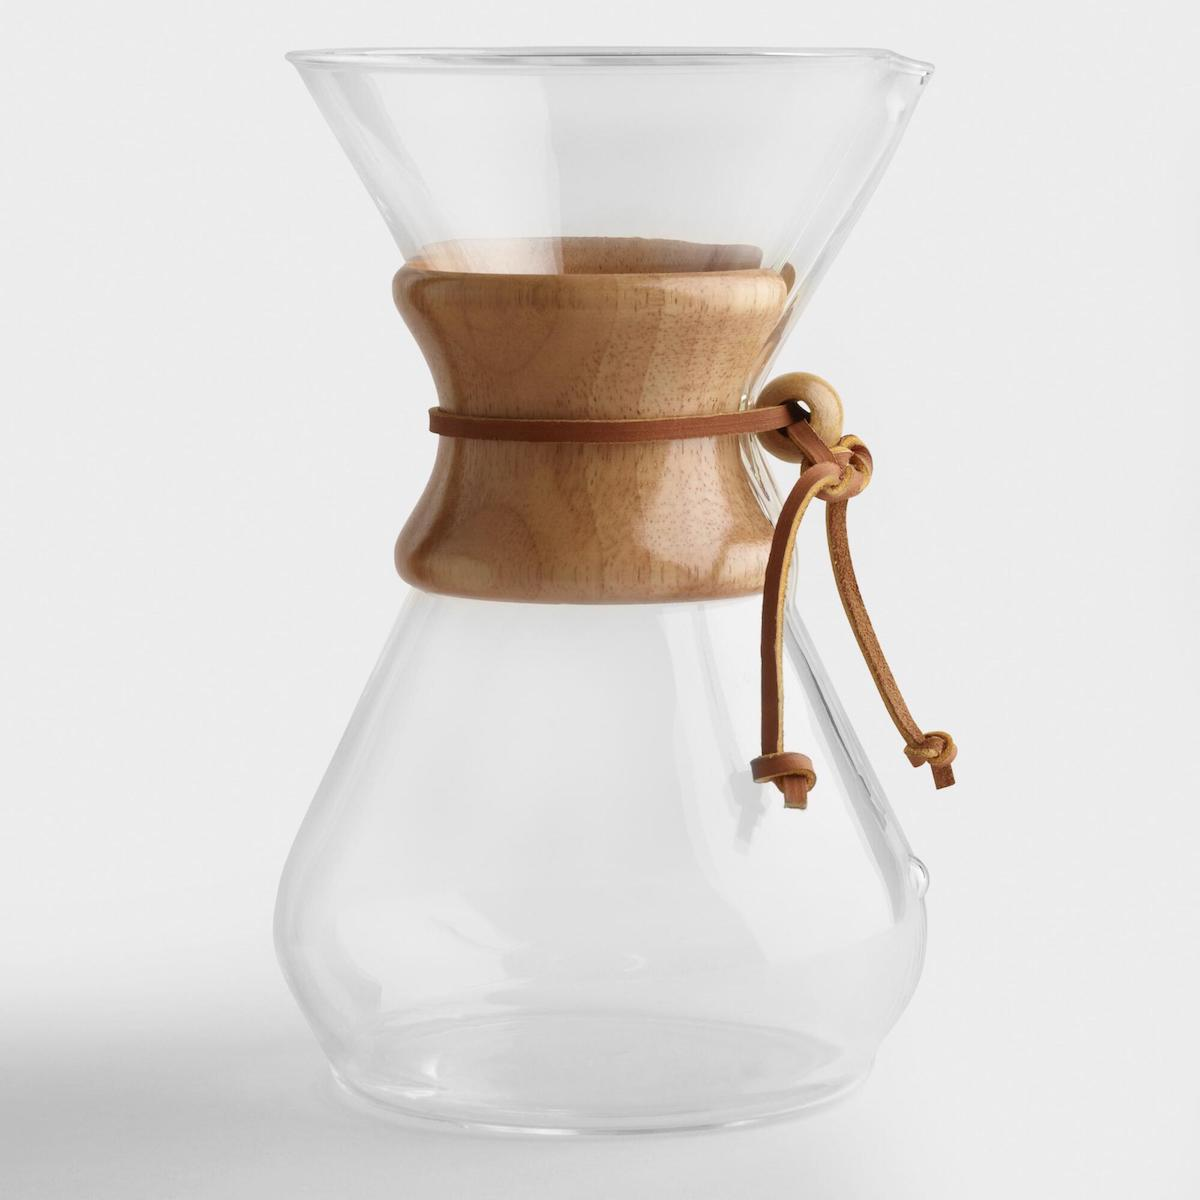 Gifts for couples, 8 Cup chemex glass coffee maker